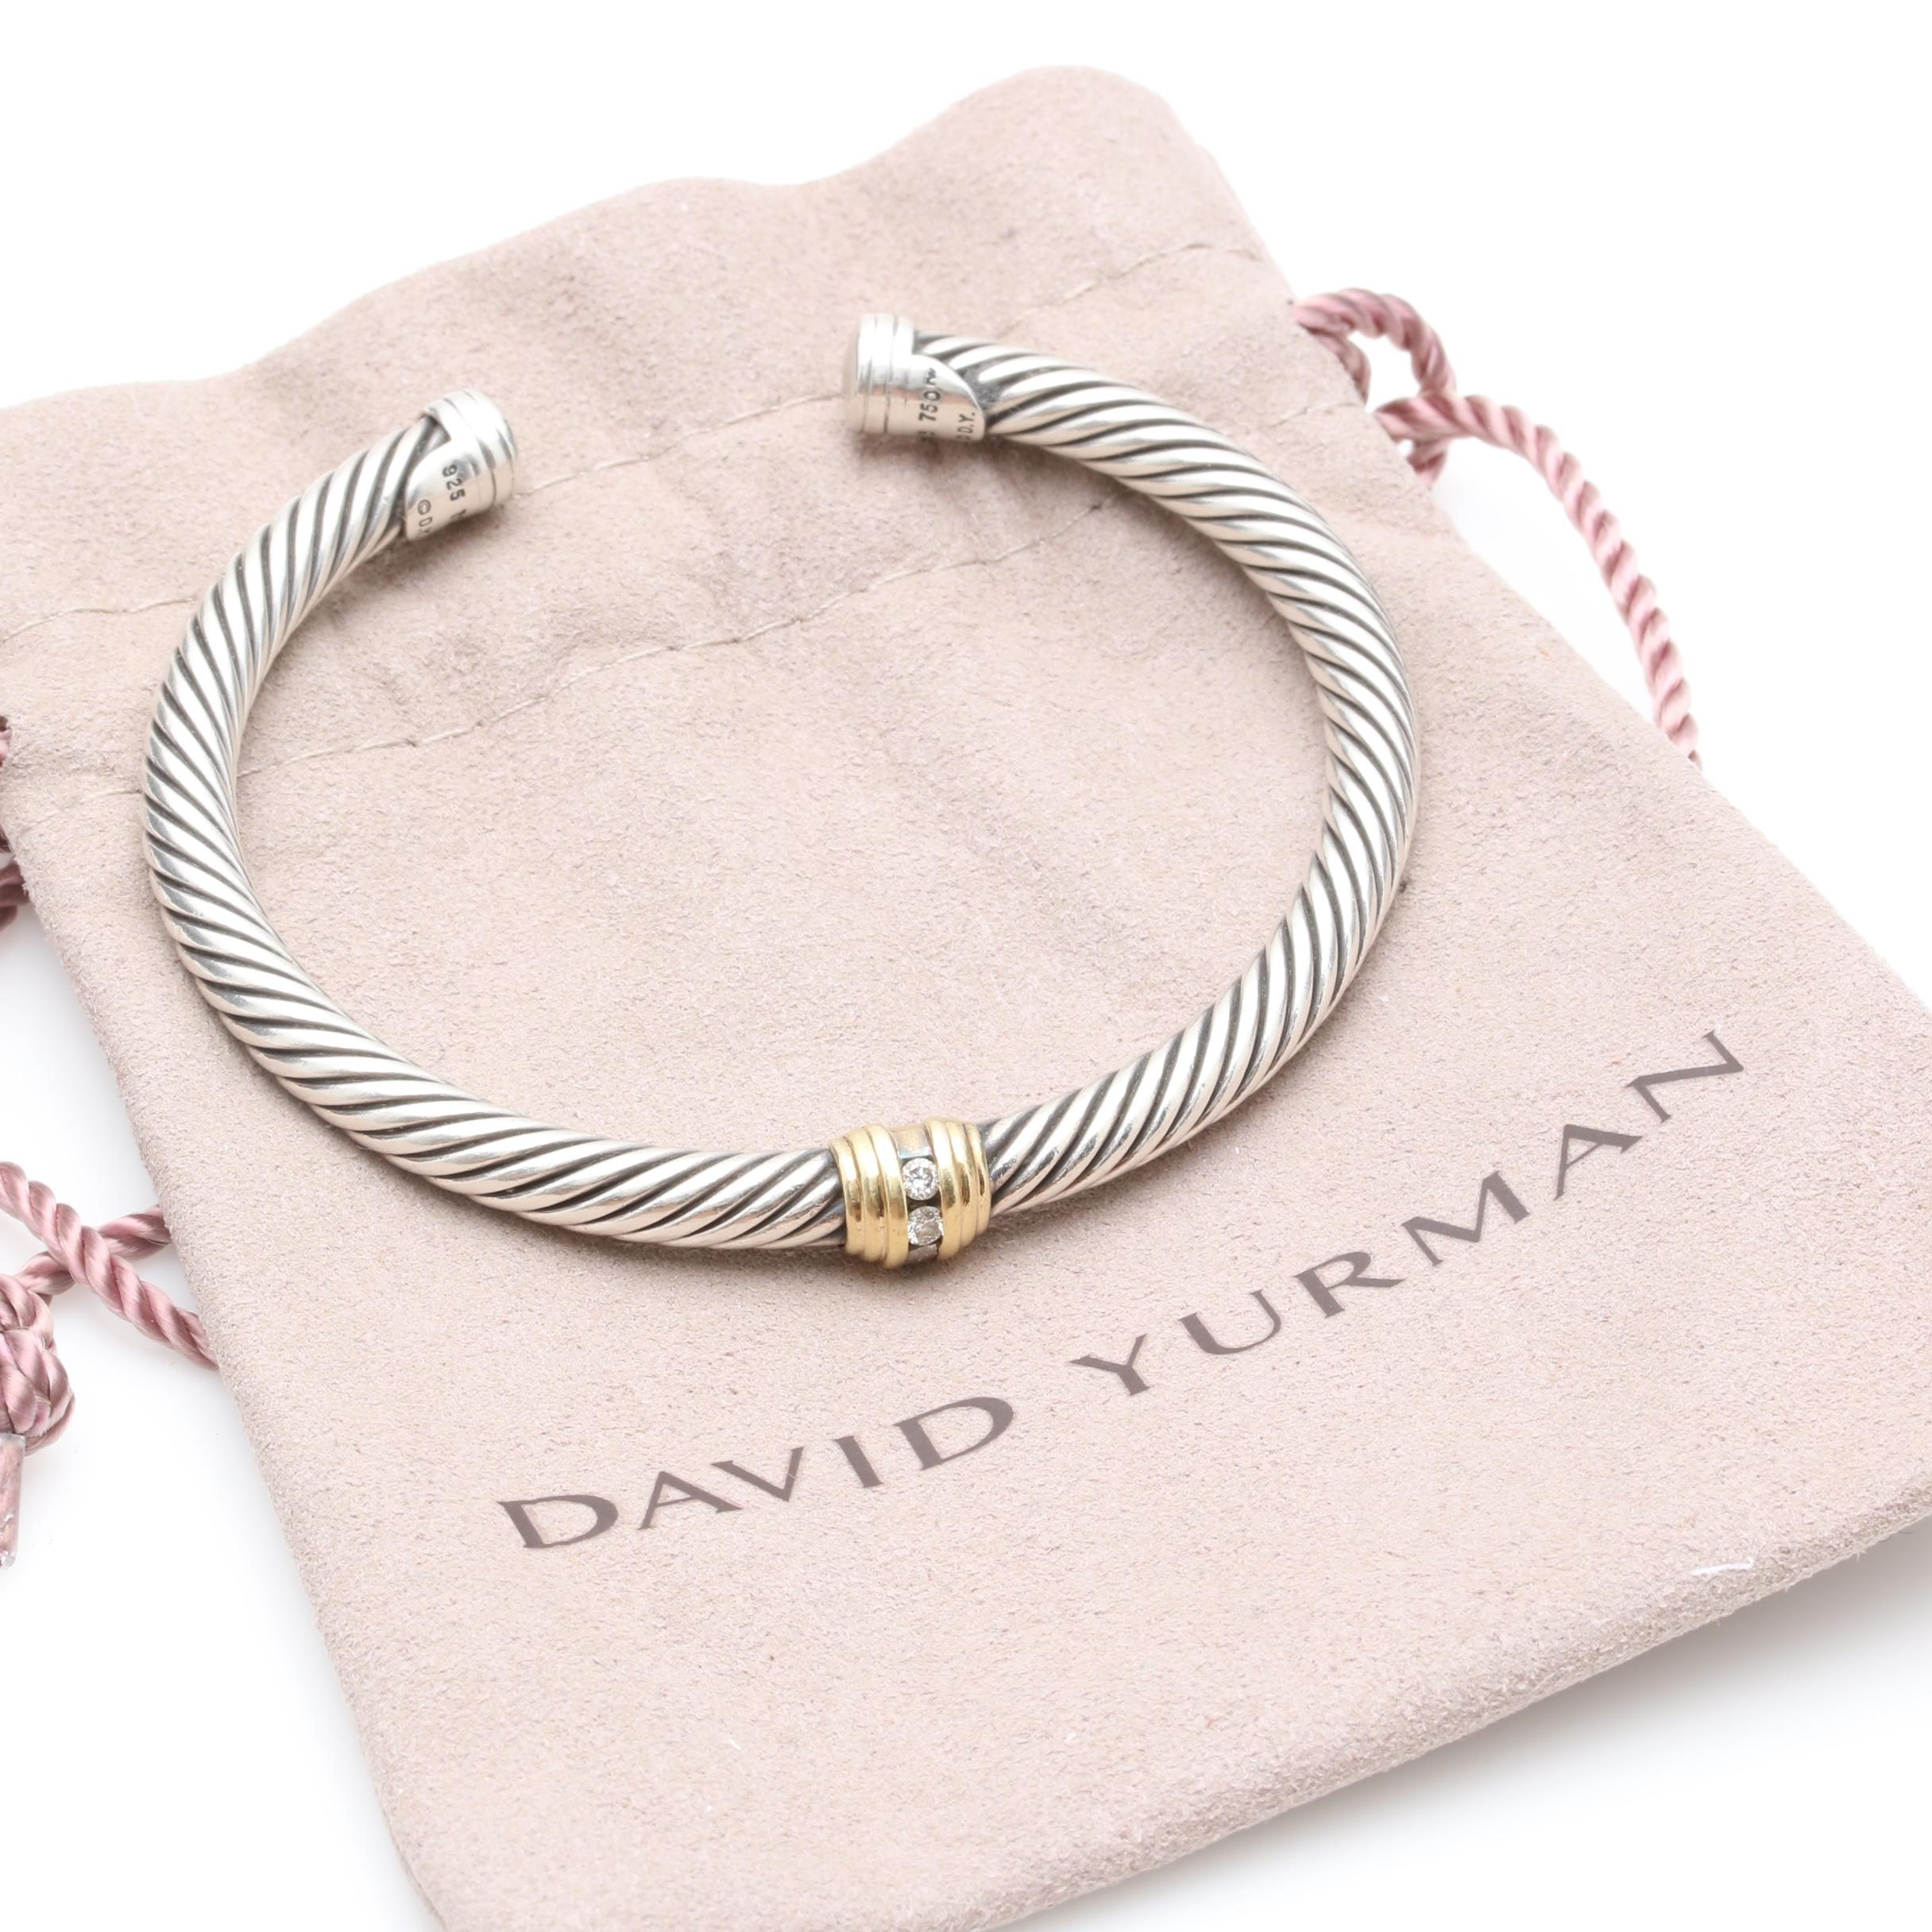 David Yurman Sterling Silver Diamond Cuff Bracelet With 18K Yellow Gold Accents